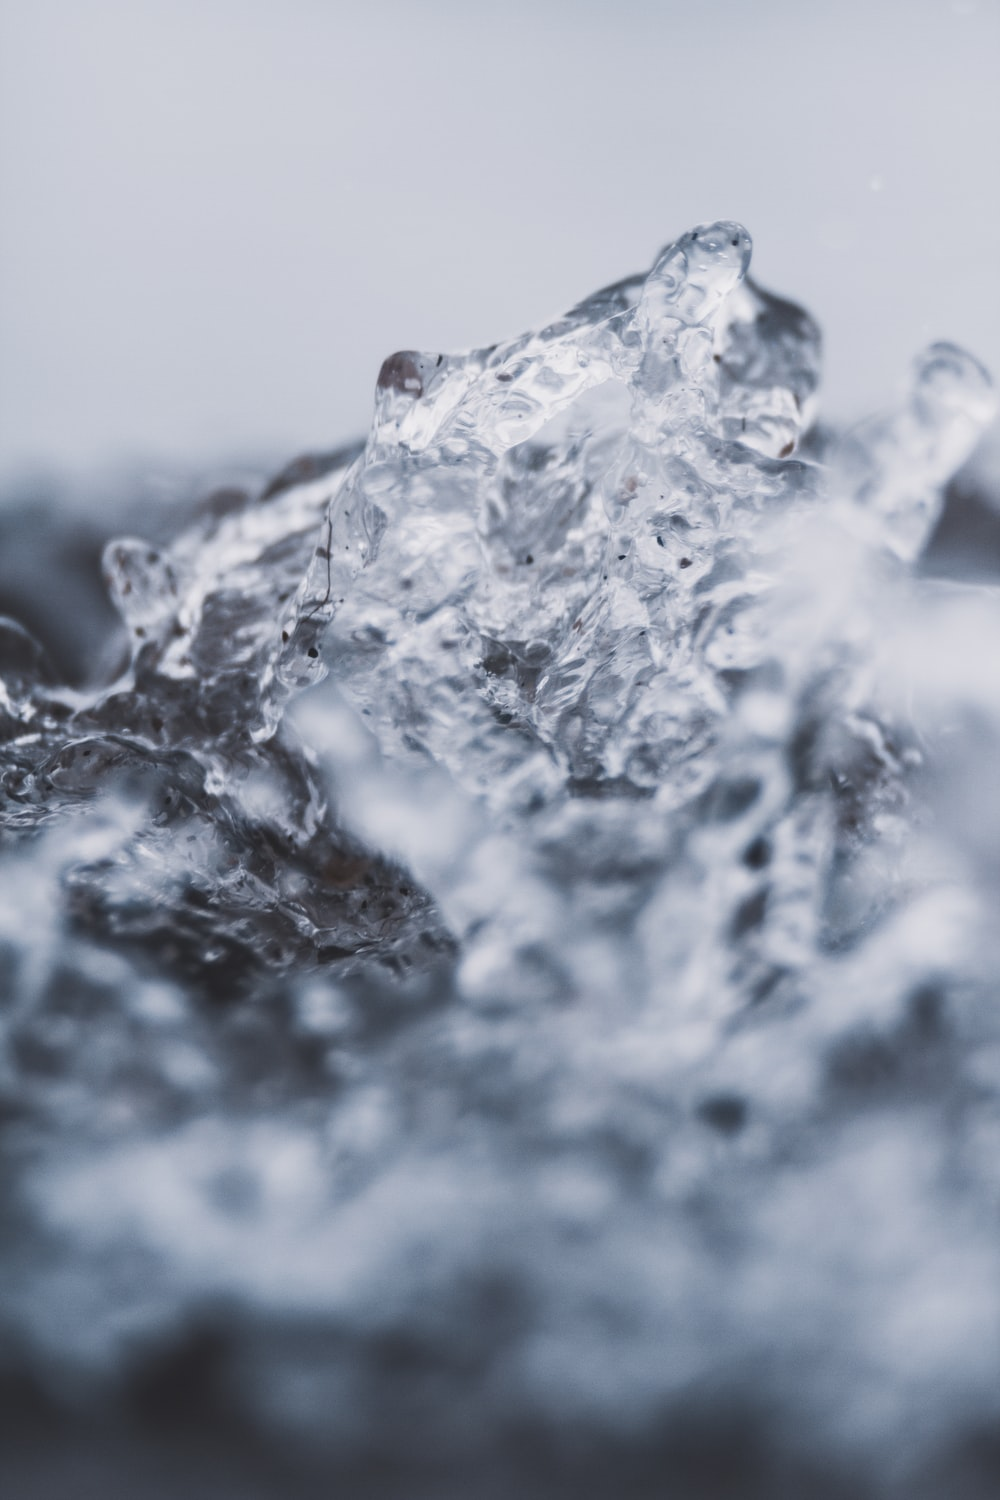 clear ice in macro photography